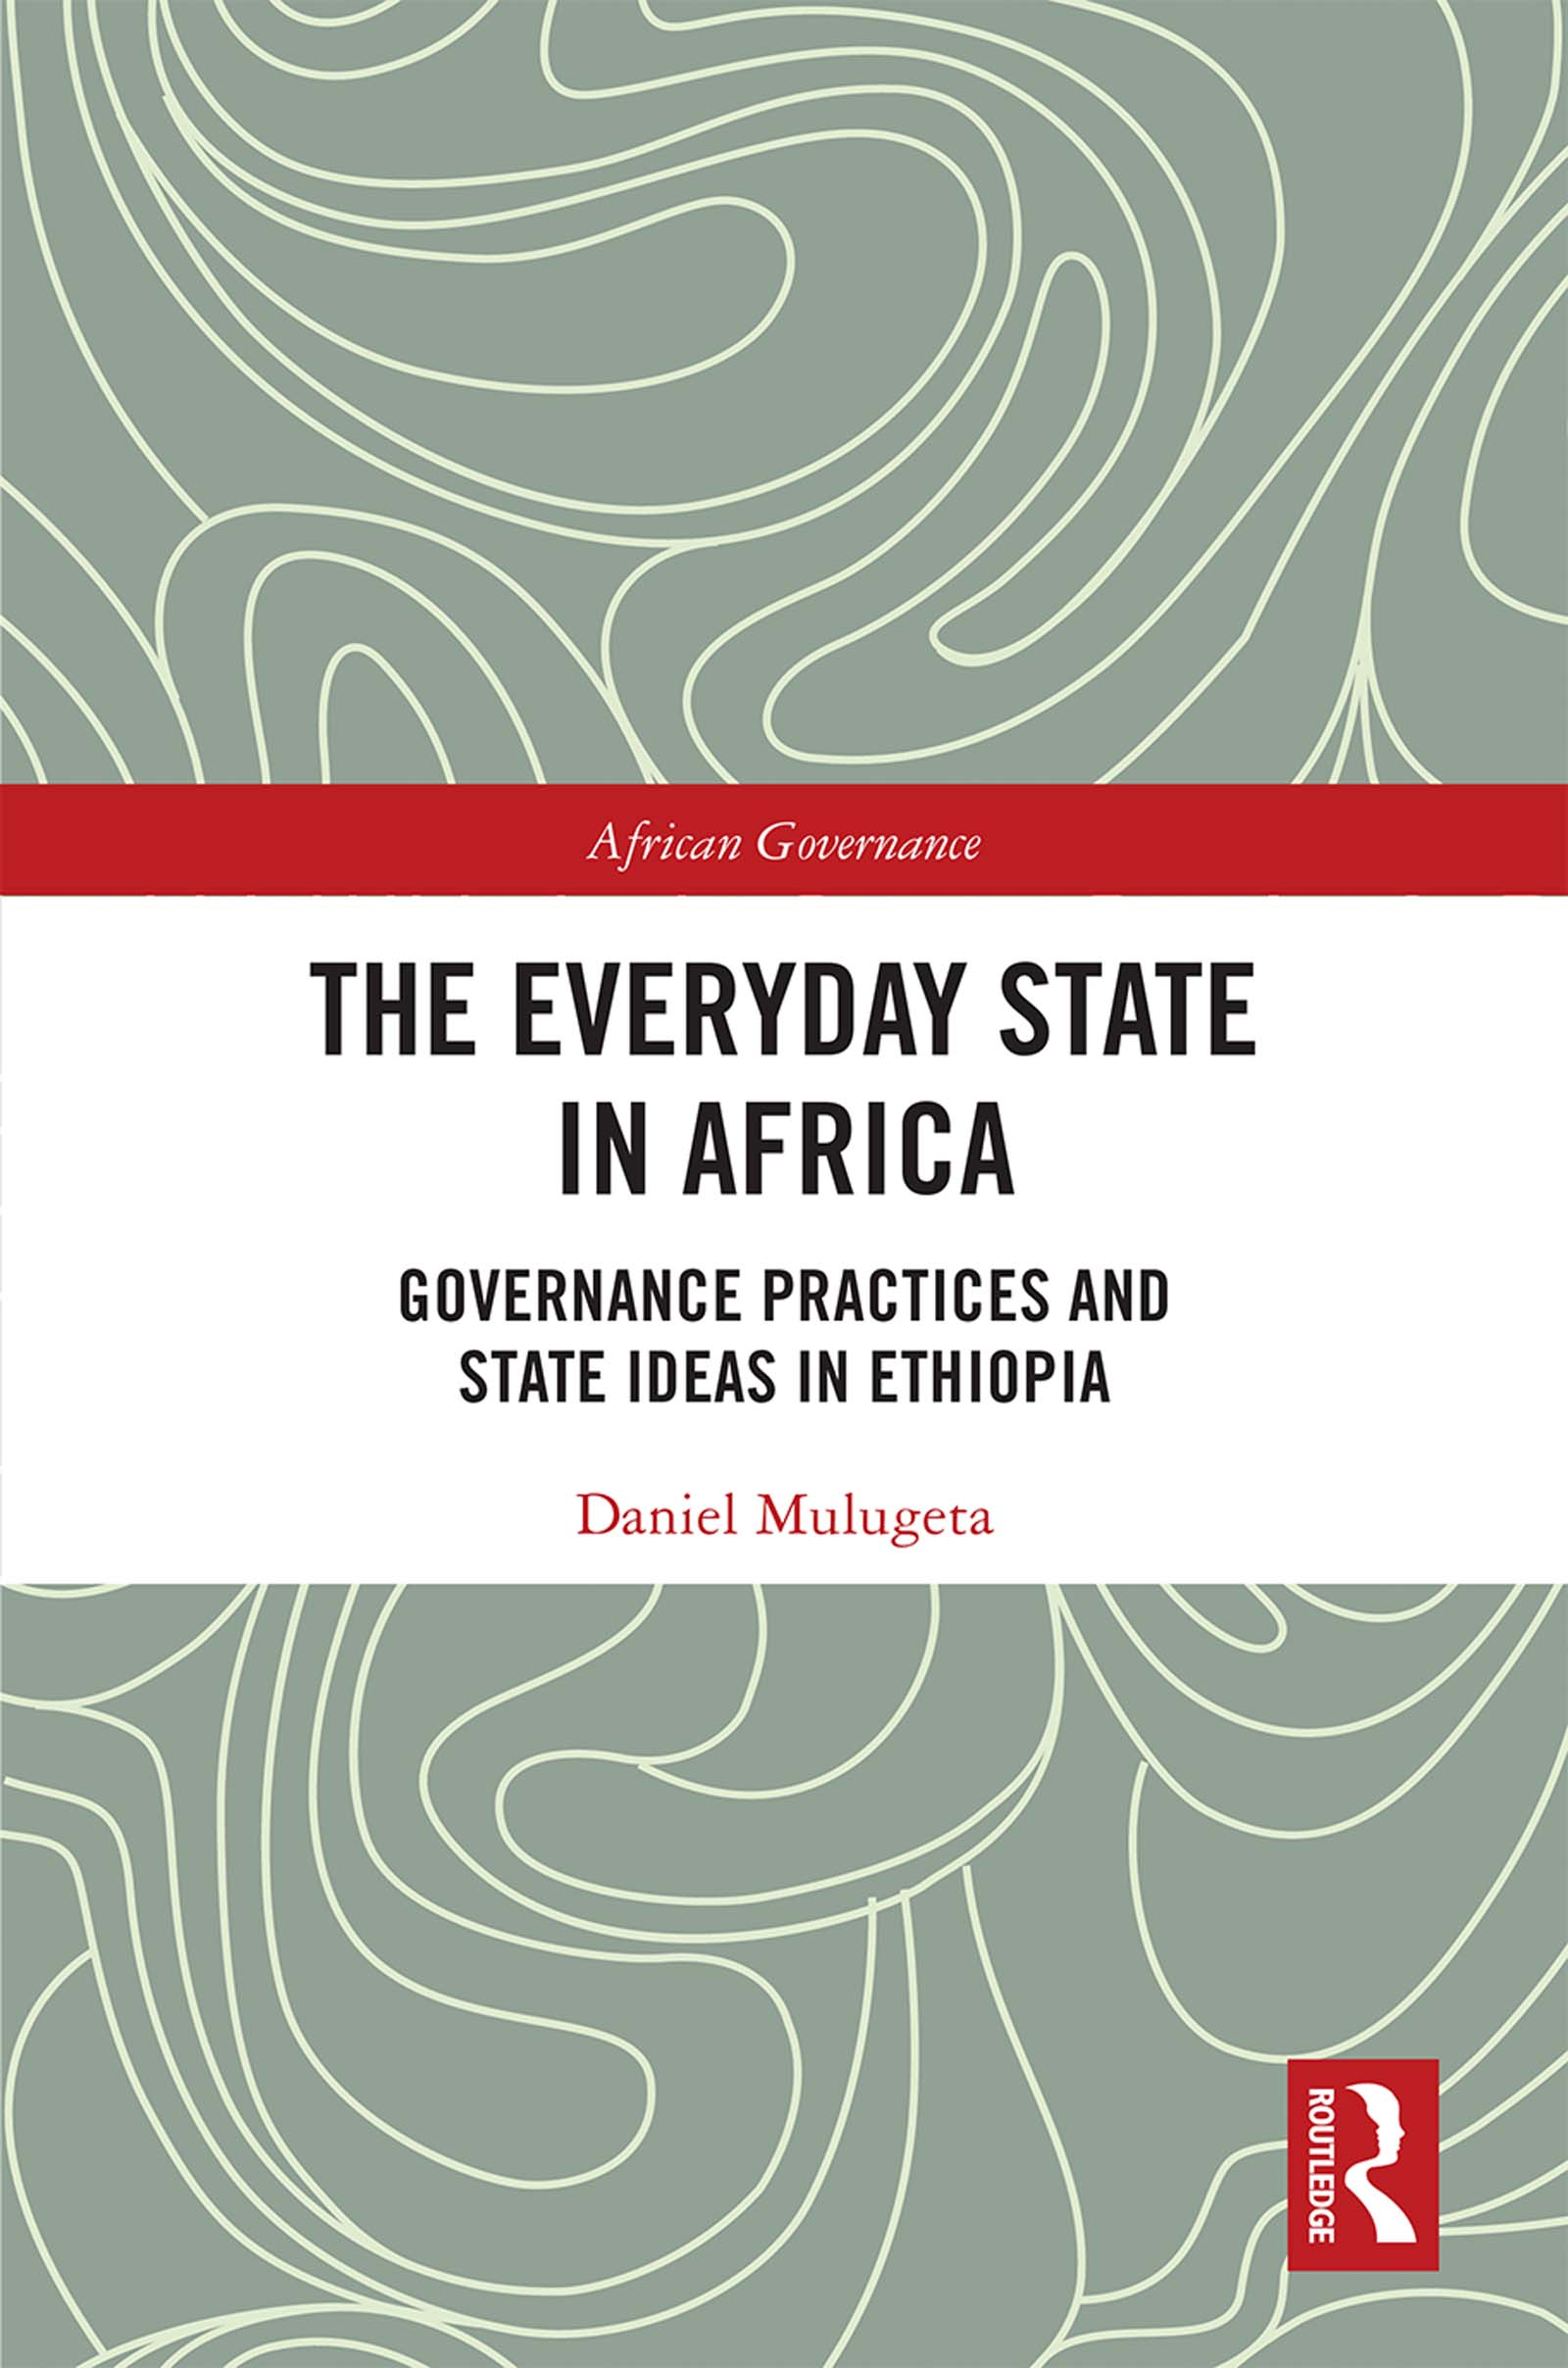 The Everyday State in Africa: Governance Practices and State Ideas in Ethiopia book cover